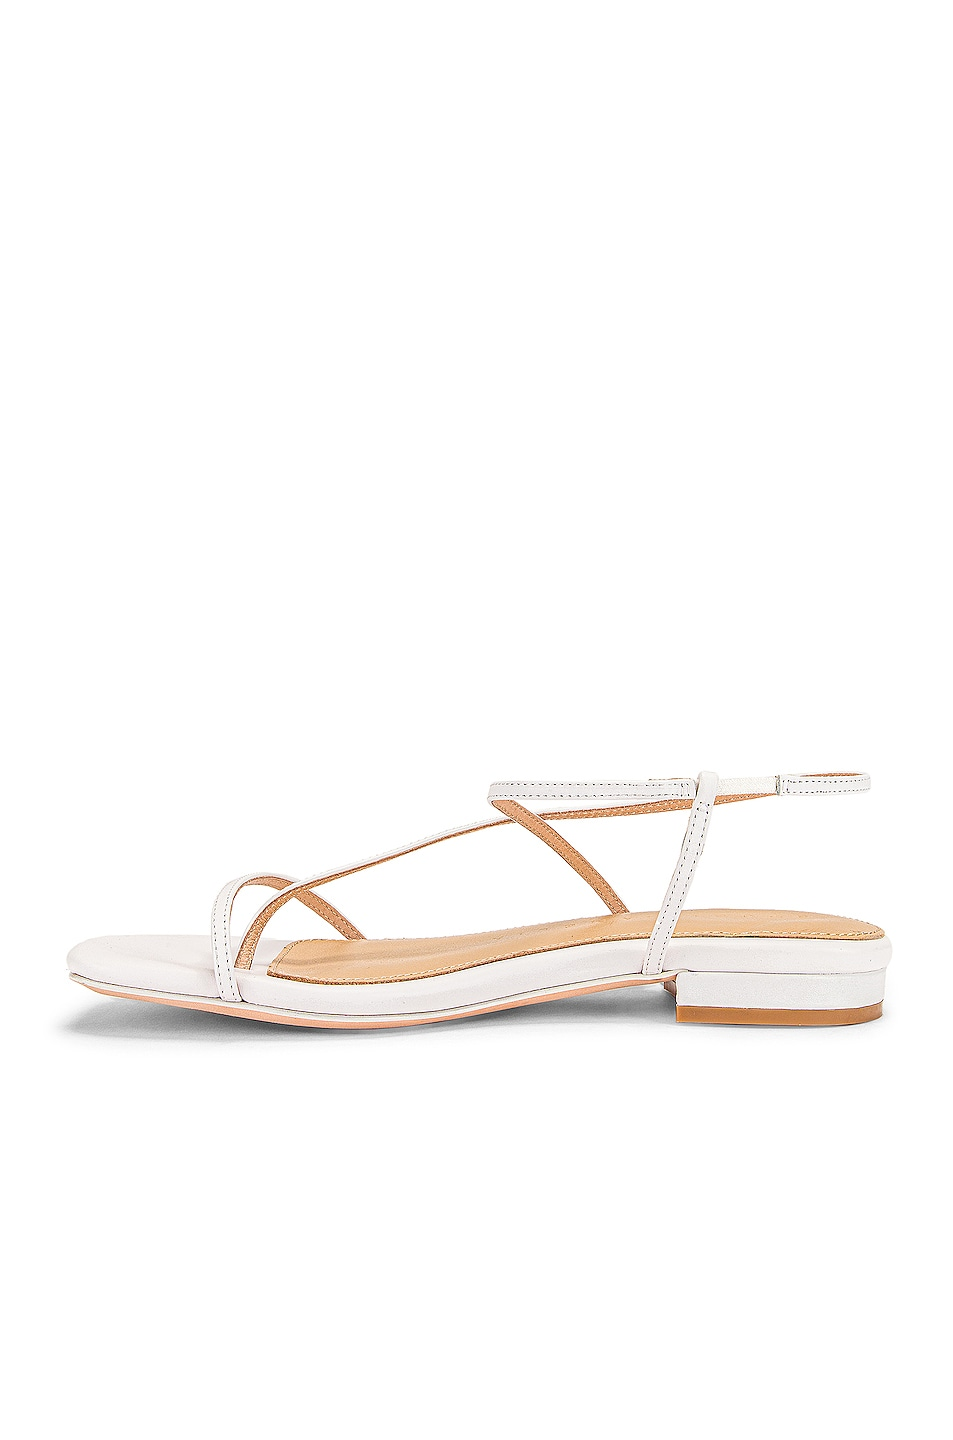 Image 5 of Studio Amelia 1.2 Sandal in White